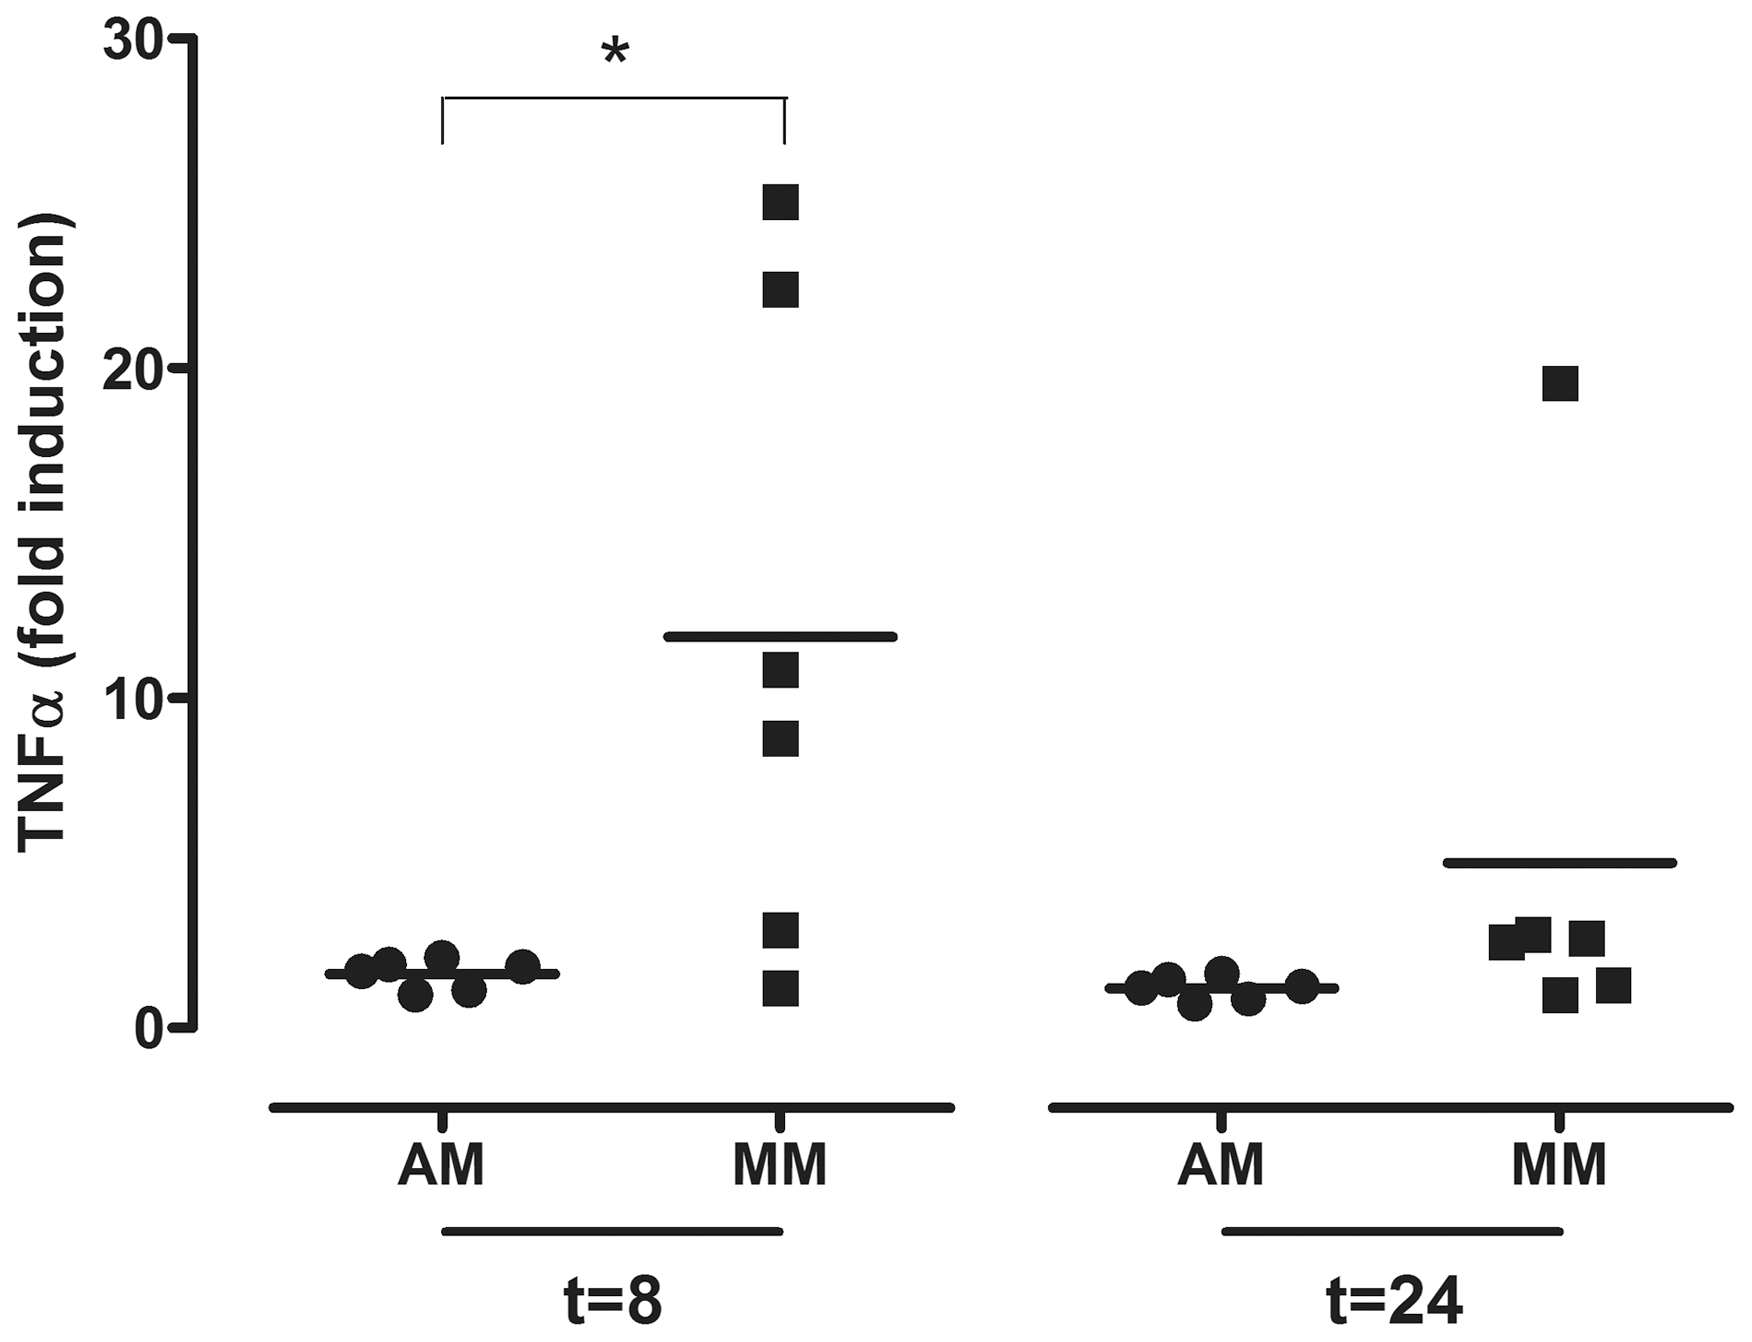 TNF-alpha mRNA levels in alveolar macrophages and monocyte-derived macrophages after LPS exposure.